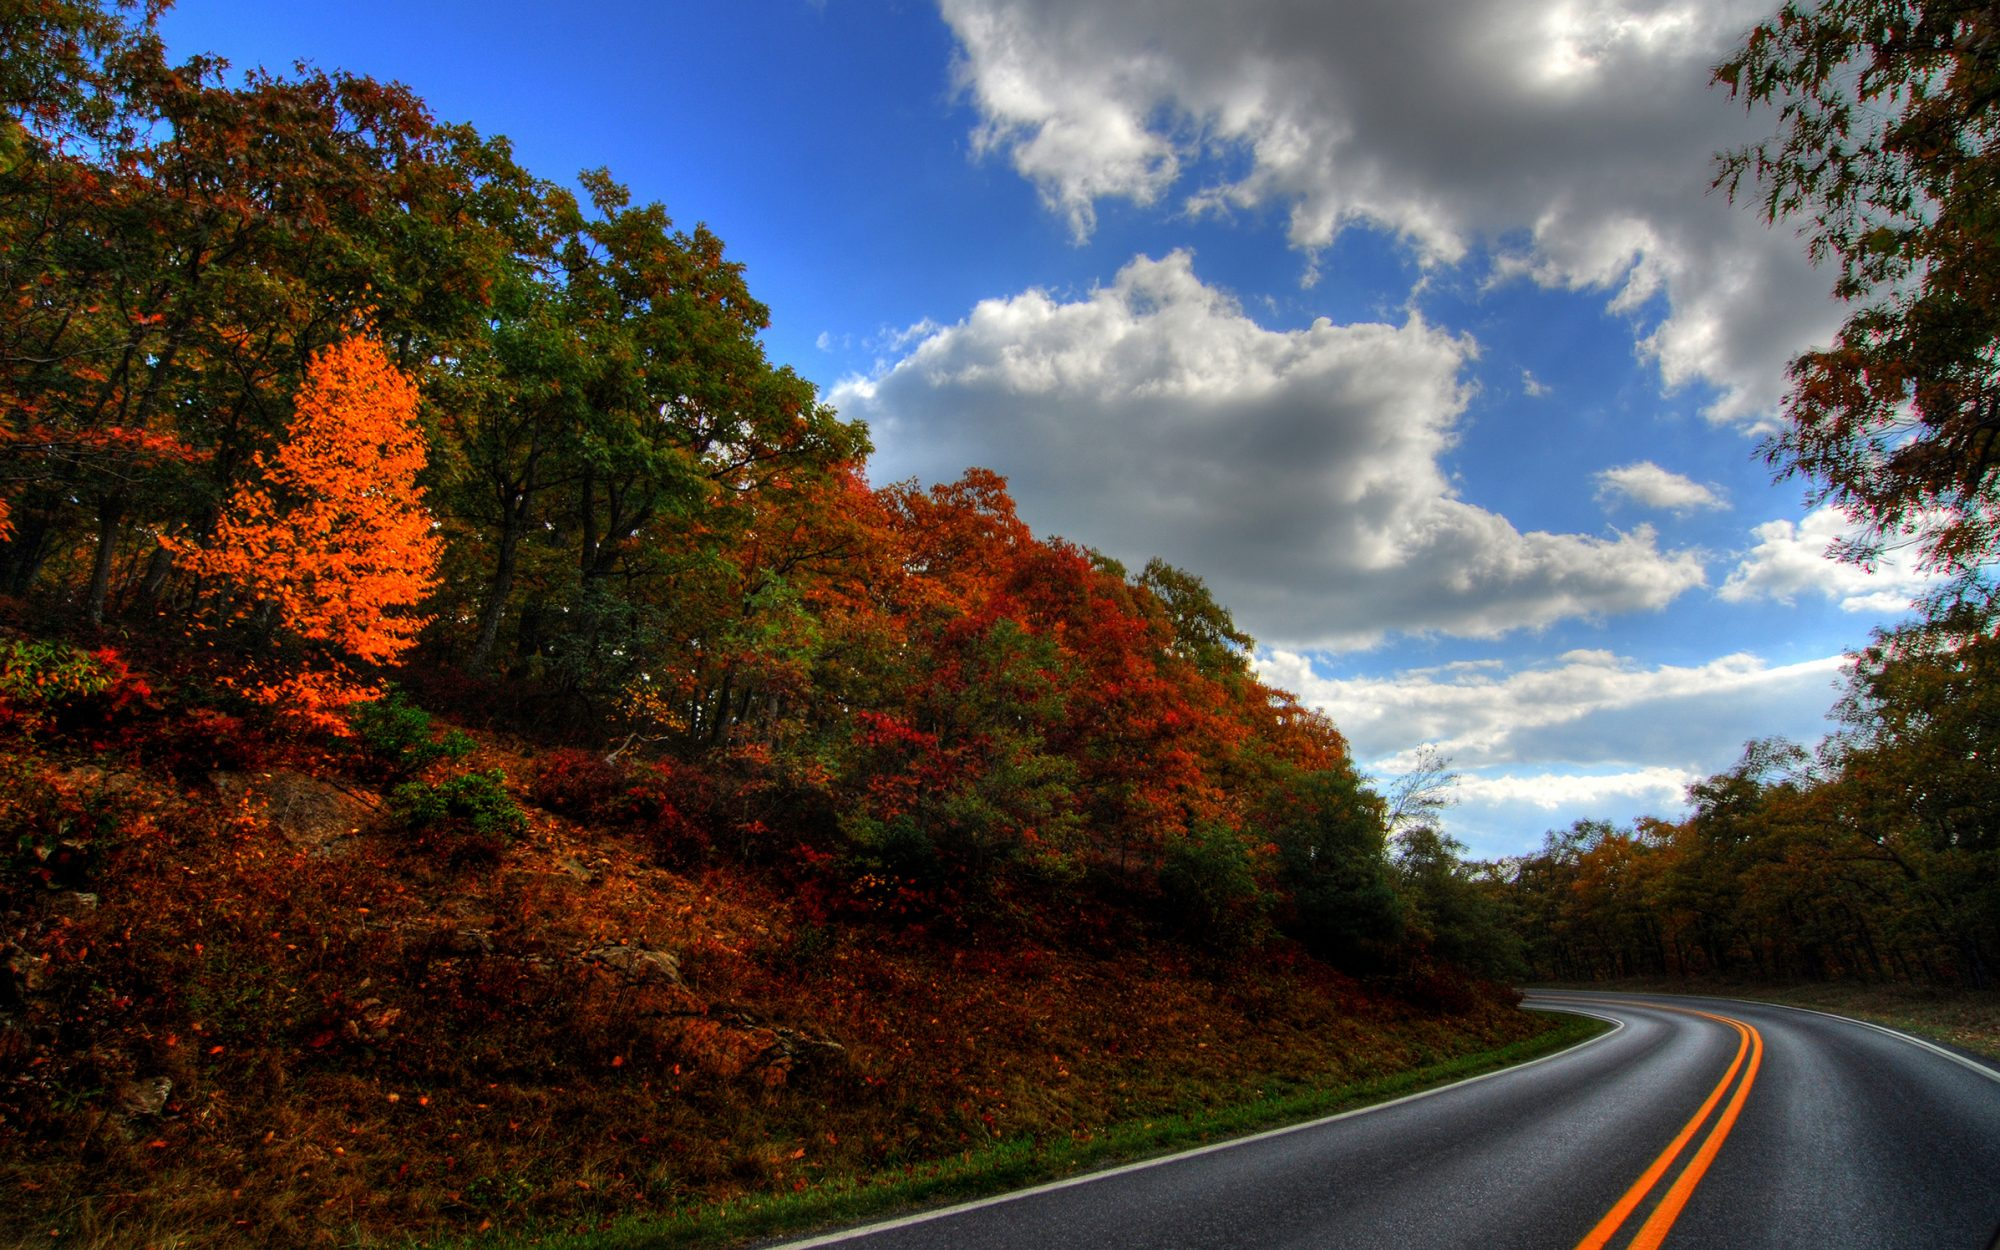 Driving in Virginia to see the foliage, along Skyline Drive.